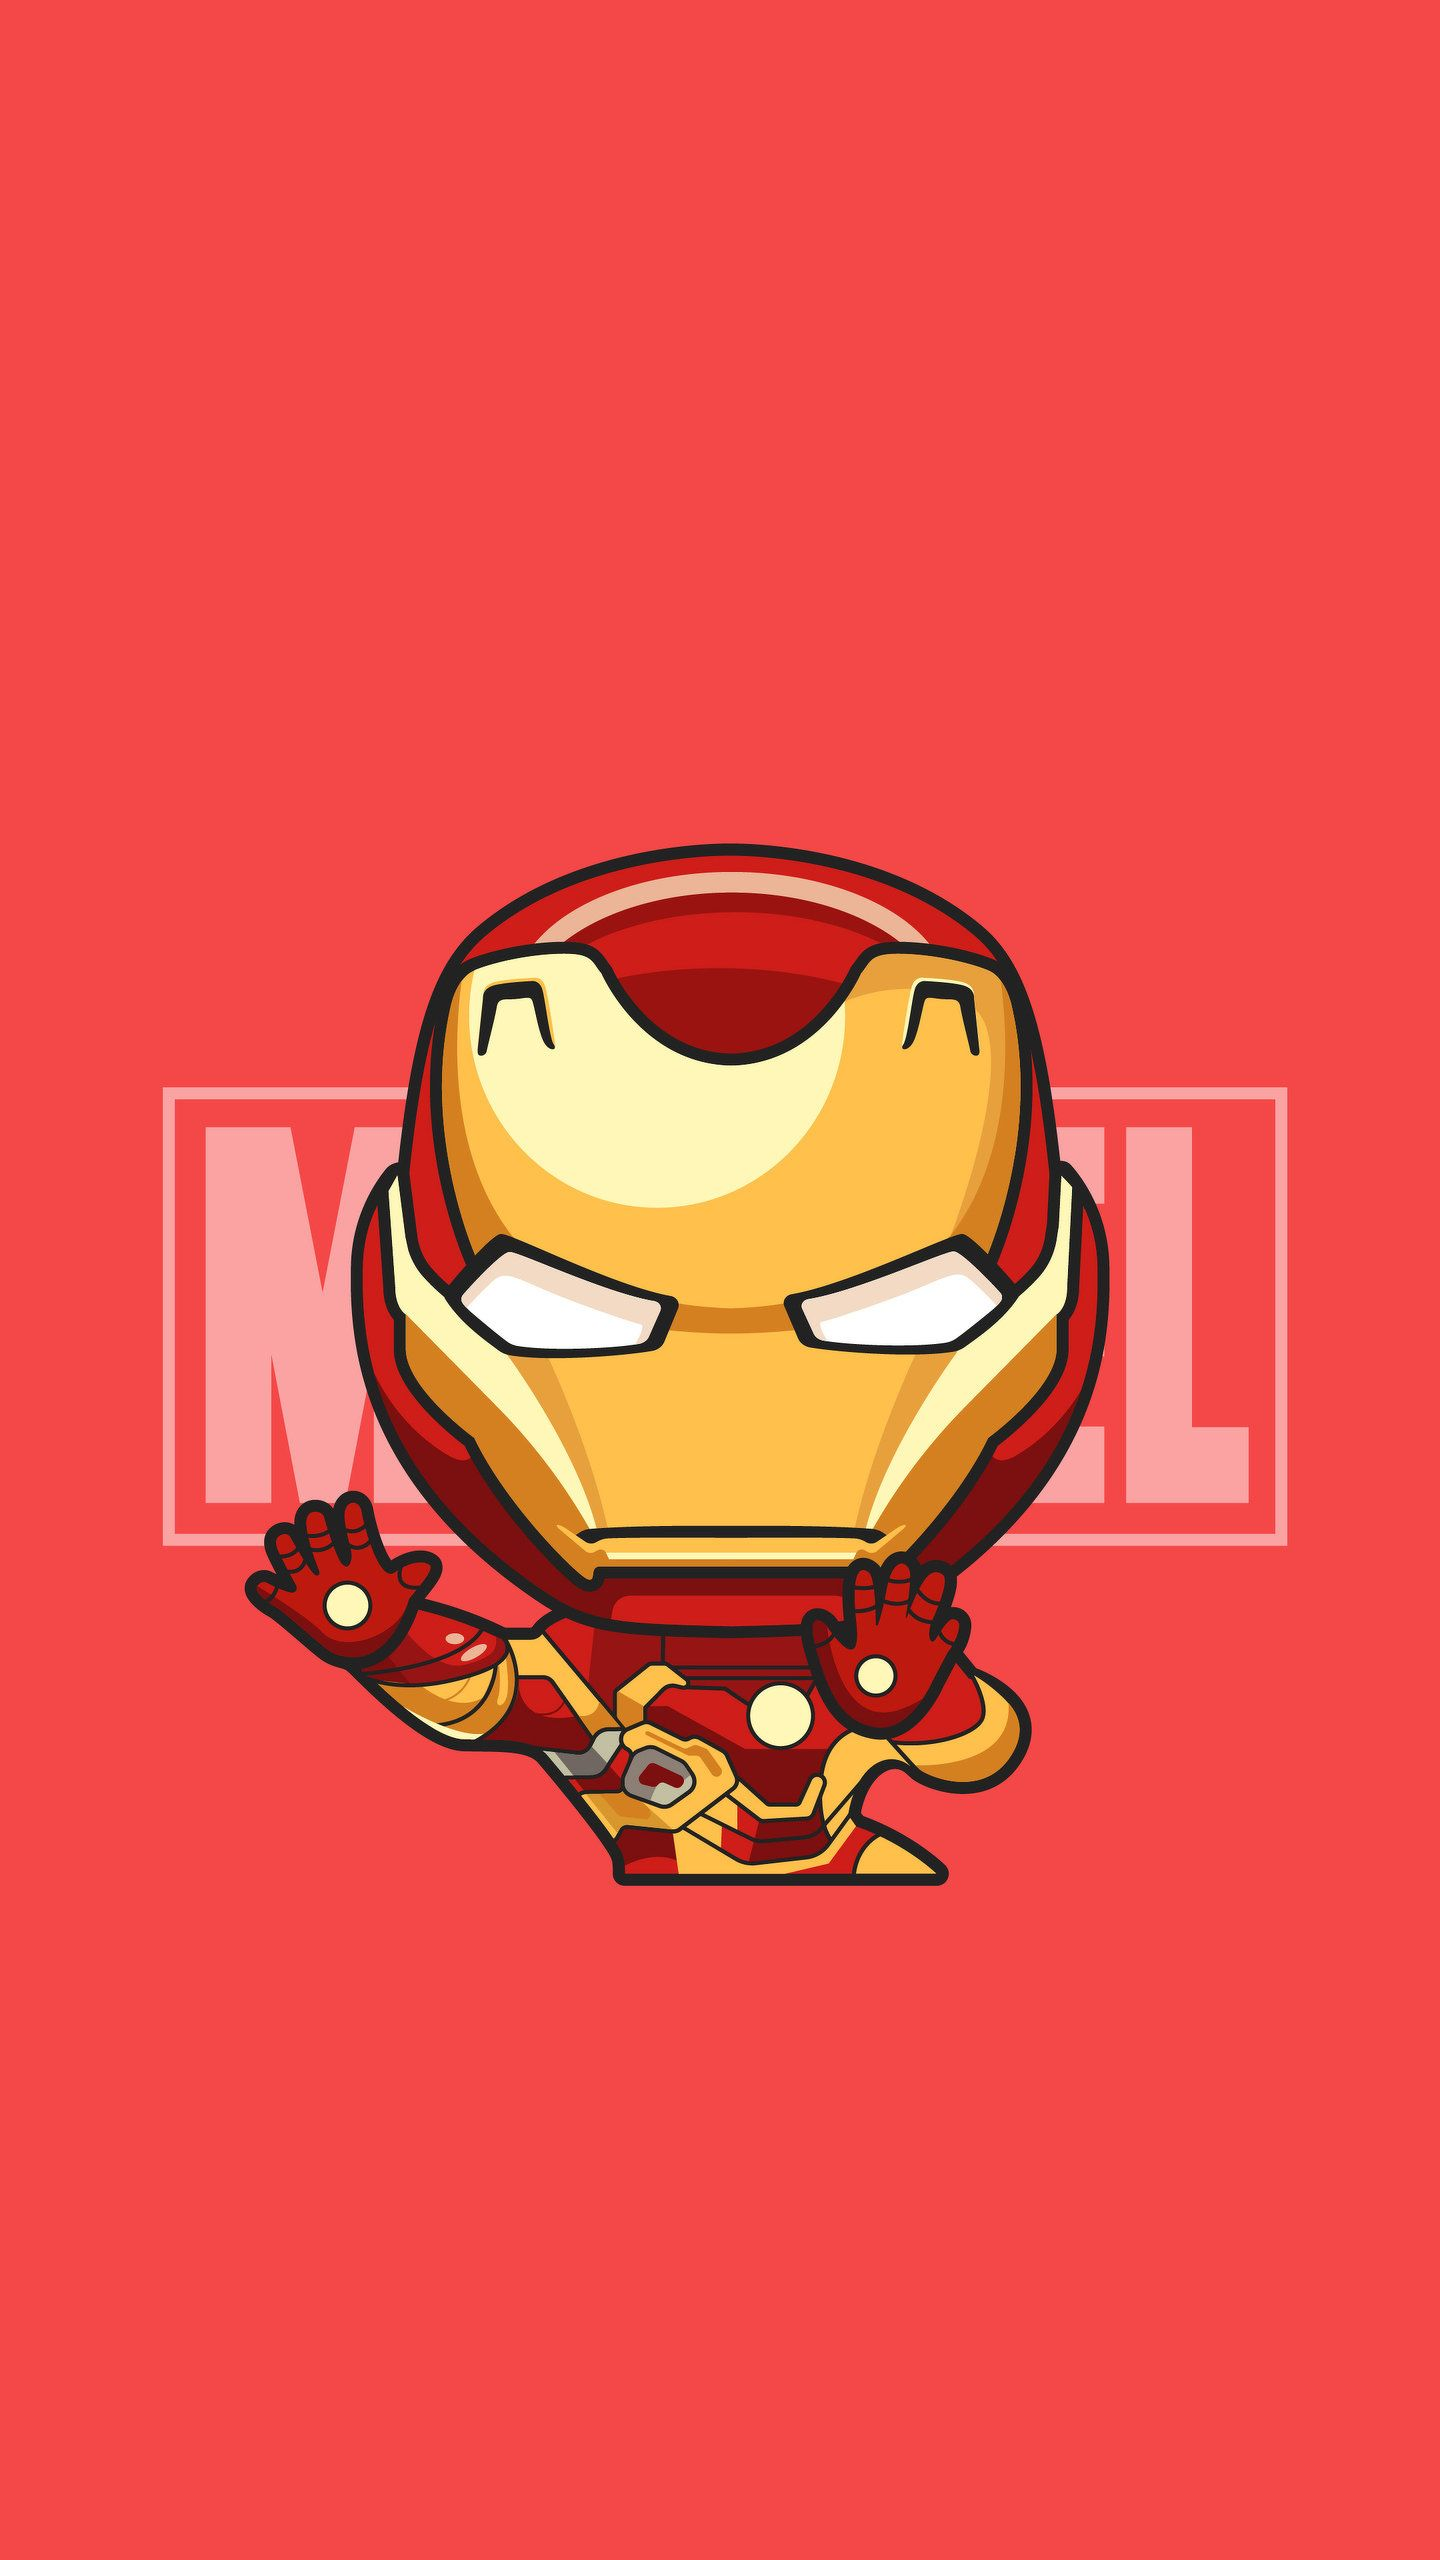 Iron Man Illustration Art 4k Hd Superheroes Wallpapers Photos And Pictures Man Illustration Illustration Art Iron Man Wallpaper